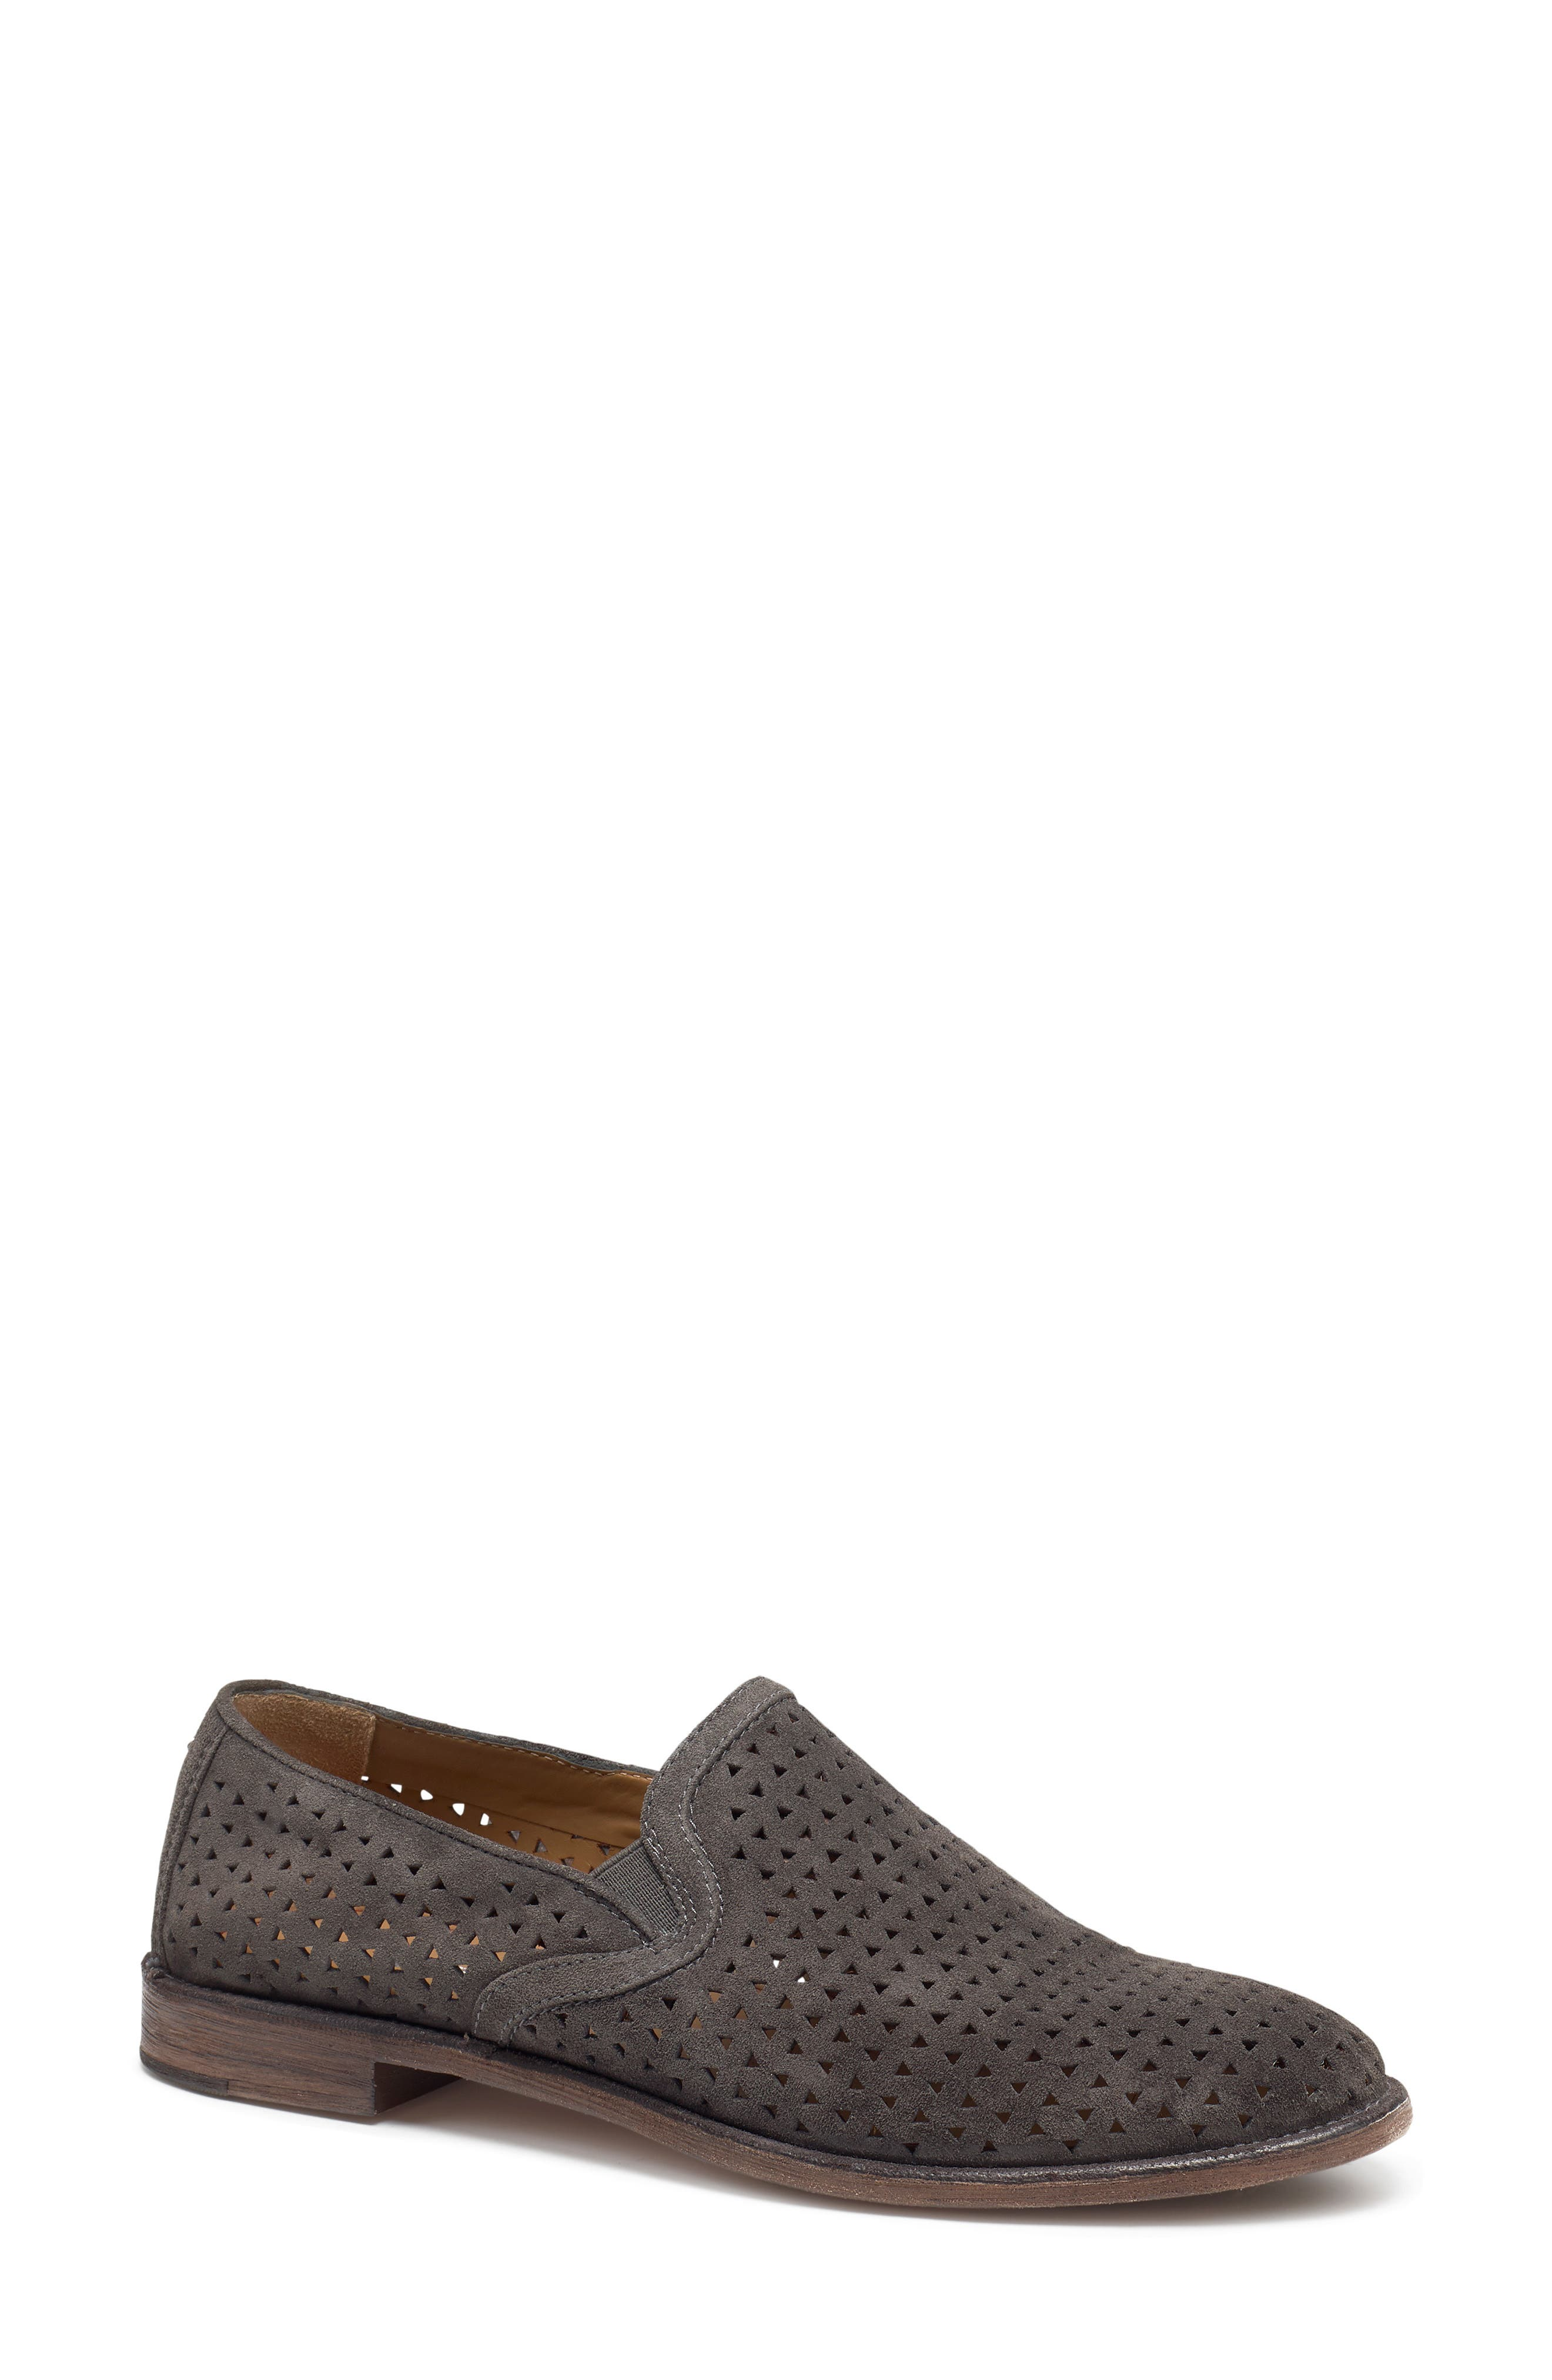 Ali Perforated Loafer,                             Main thumbnail 1, color,                             GREY SUEDE